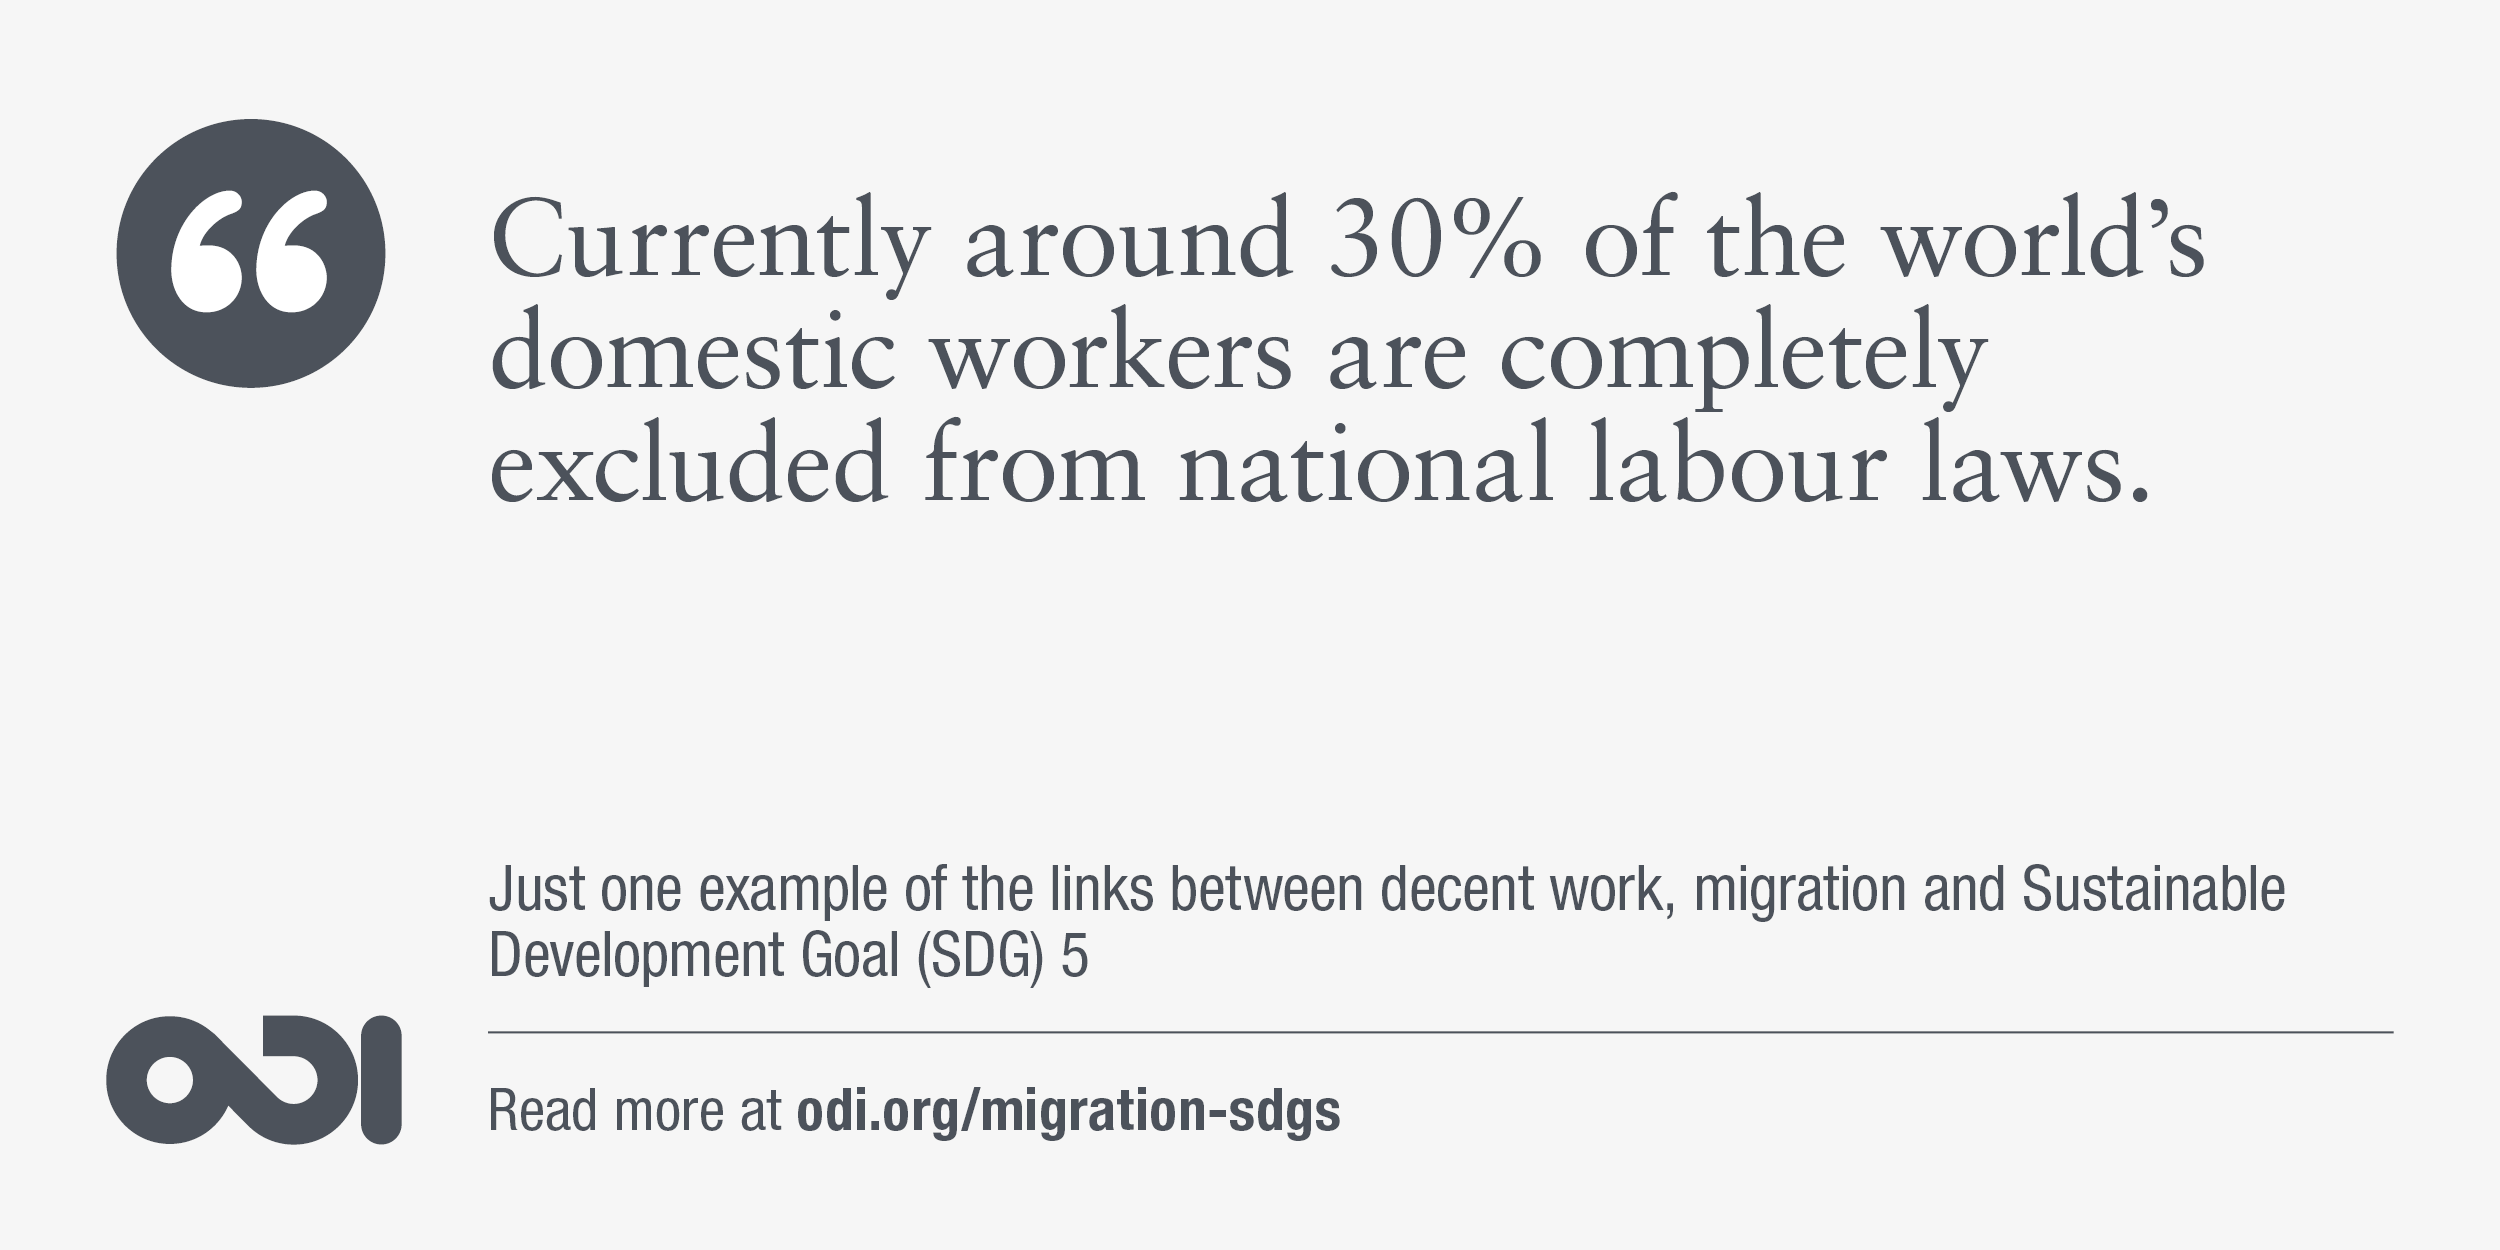 The links between decent work, migration and SDG 5.